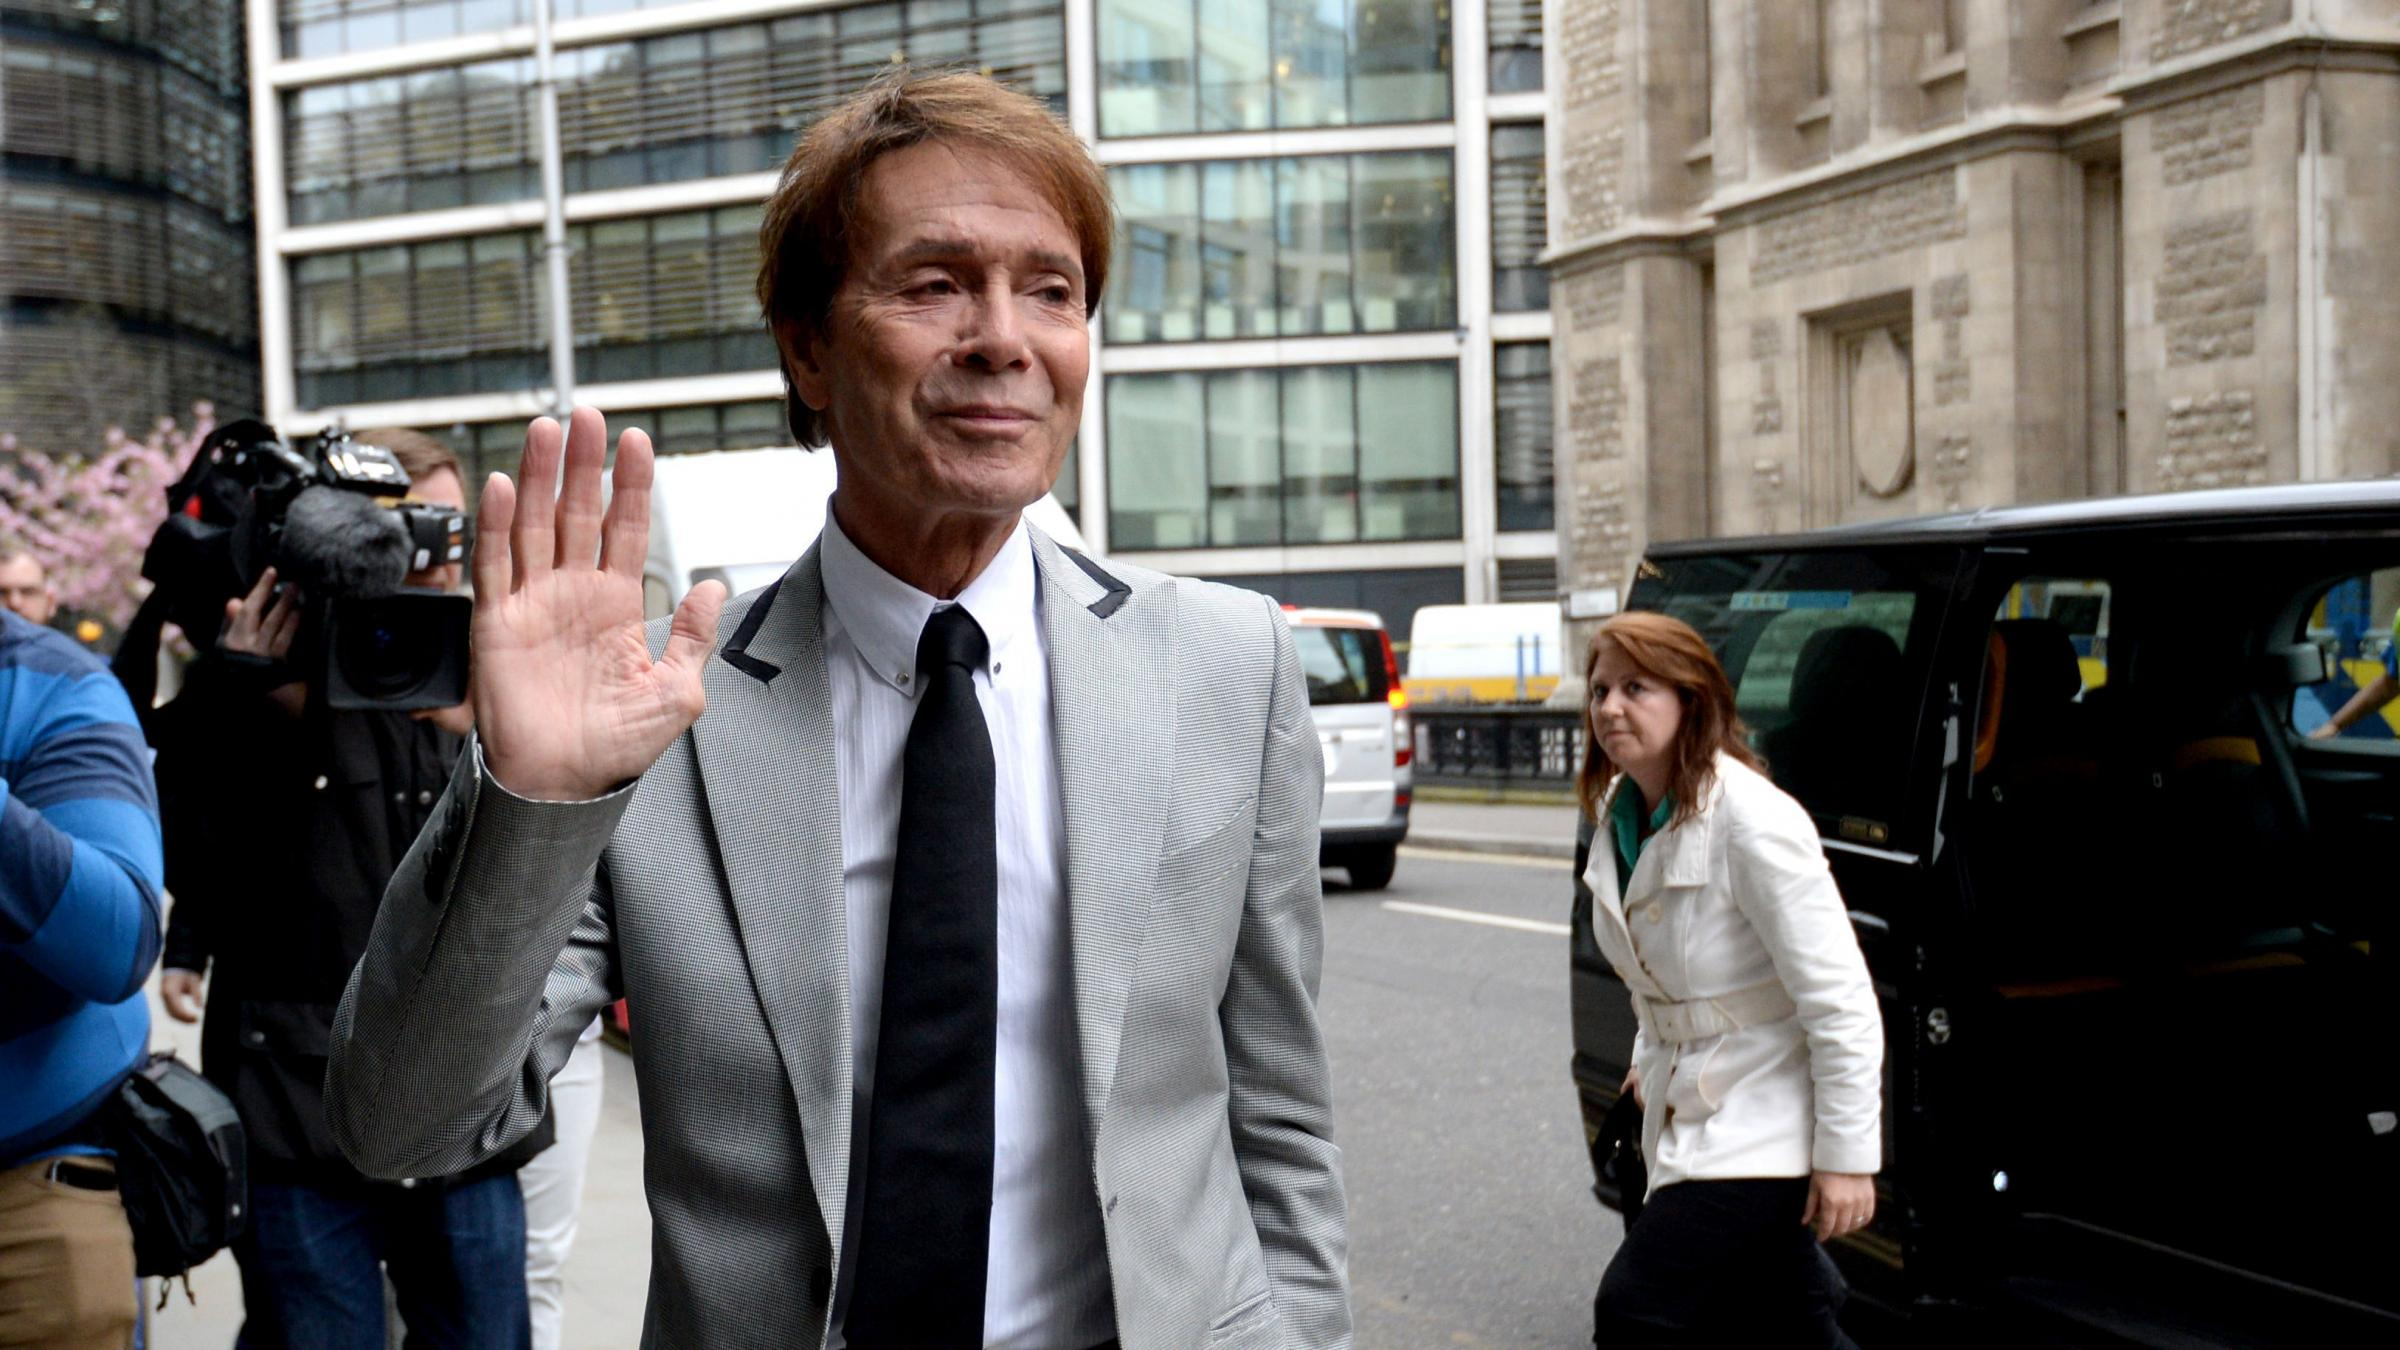 BBC footage of Sir Cliff Richard raid was intrusive, says ex-police chief